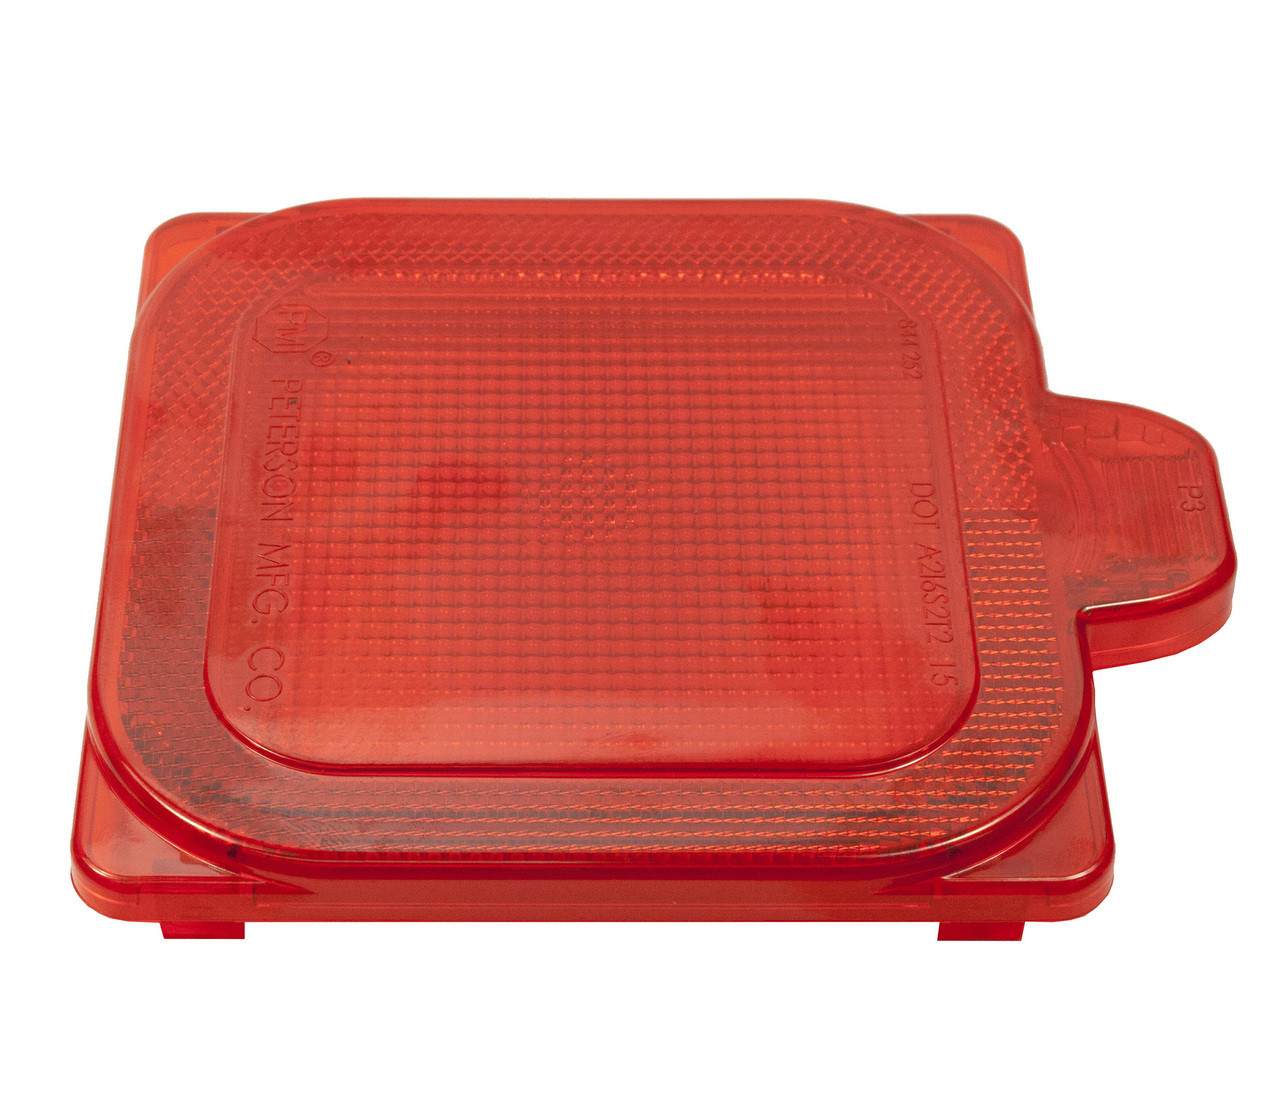 844-252 --- Peterson Replacement Red Square Lens for LED844